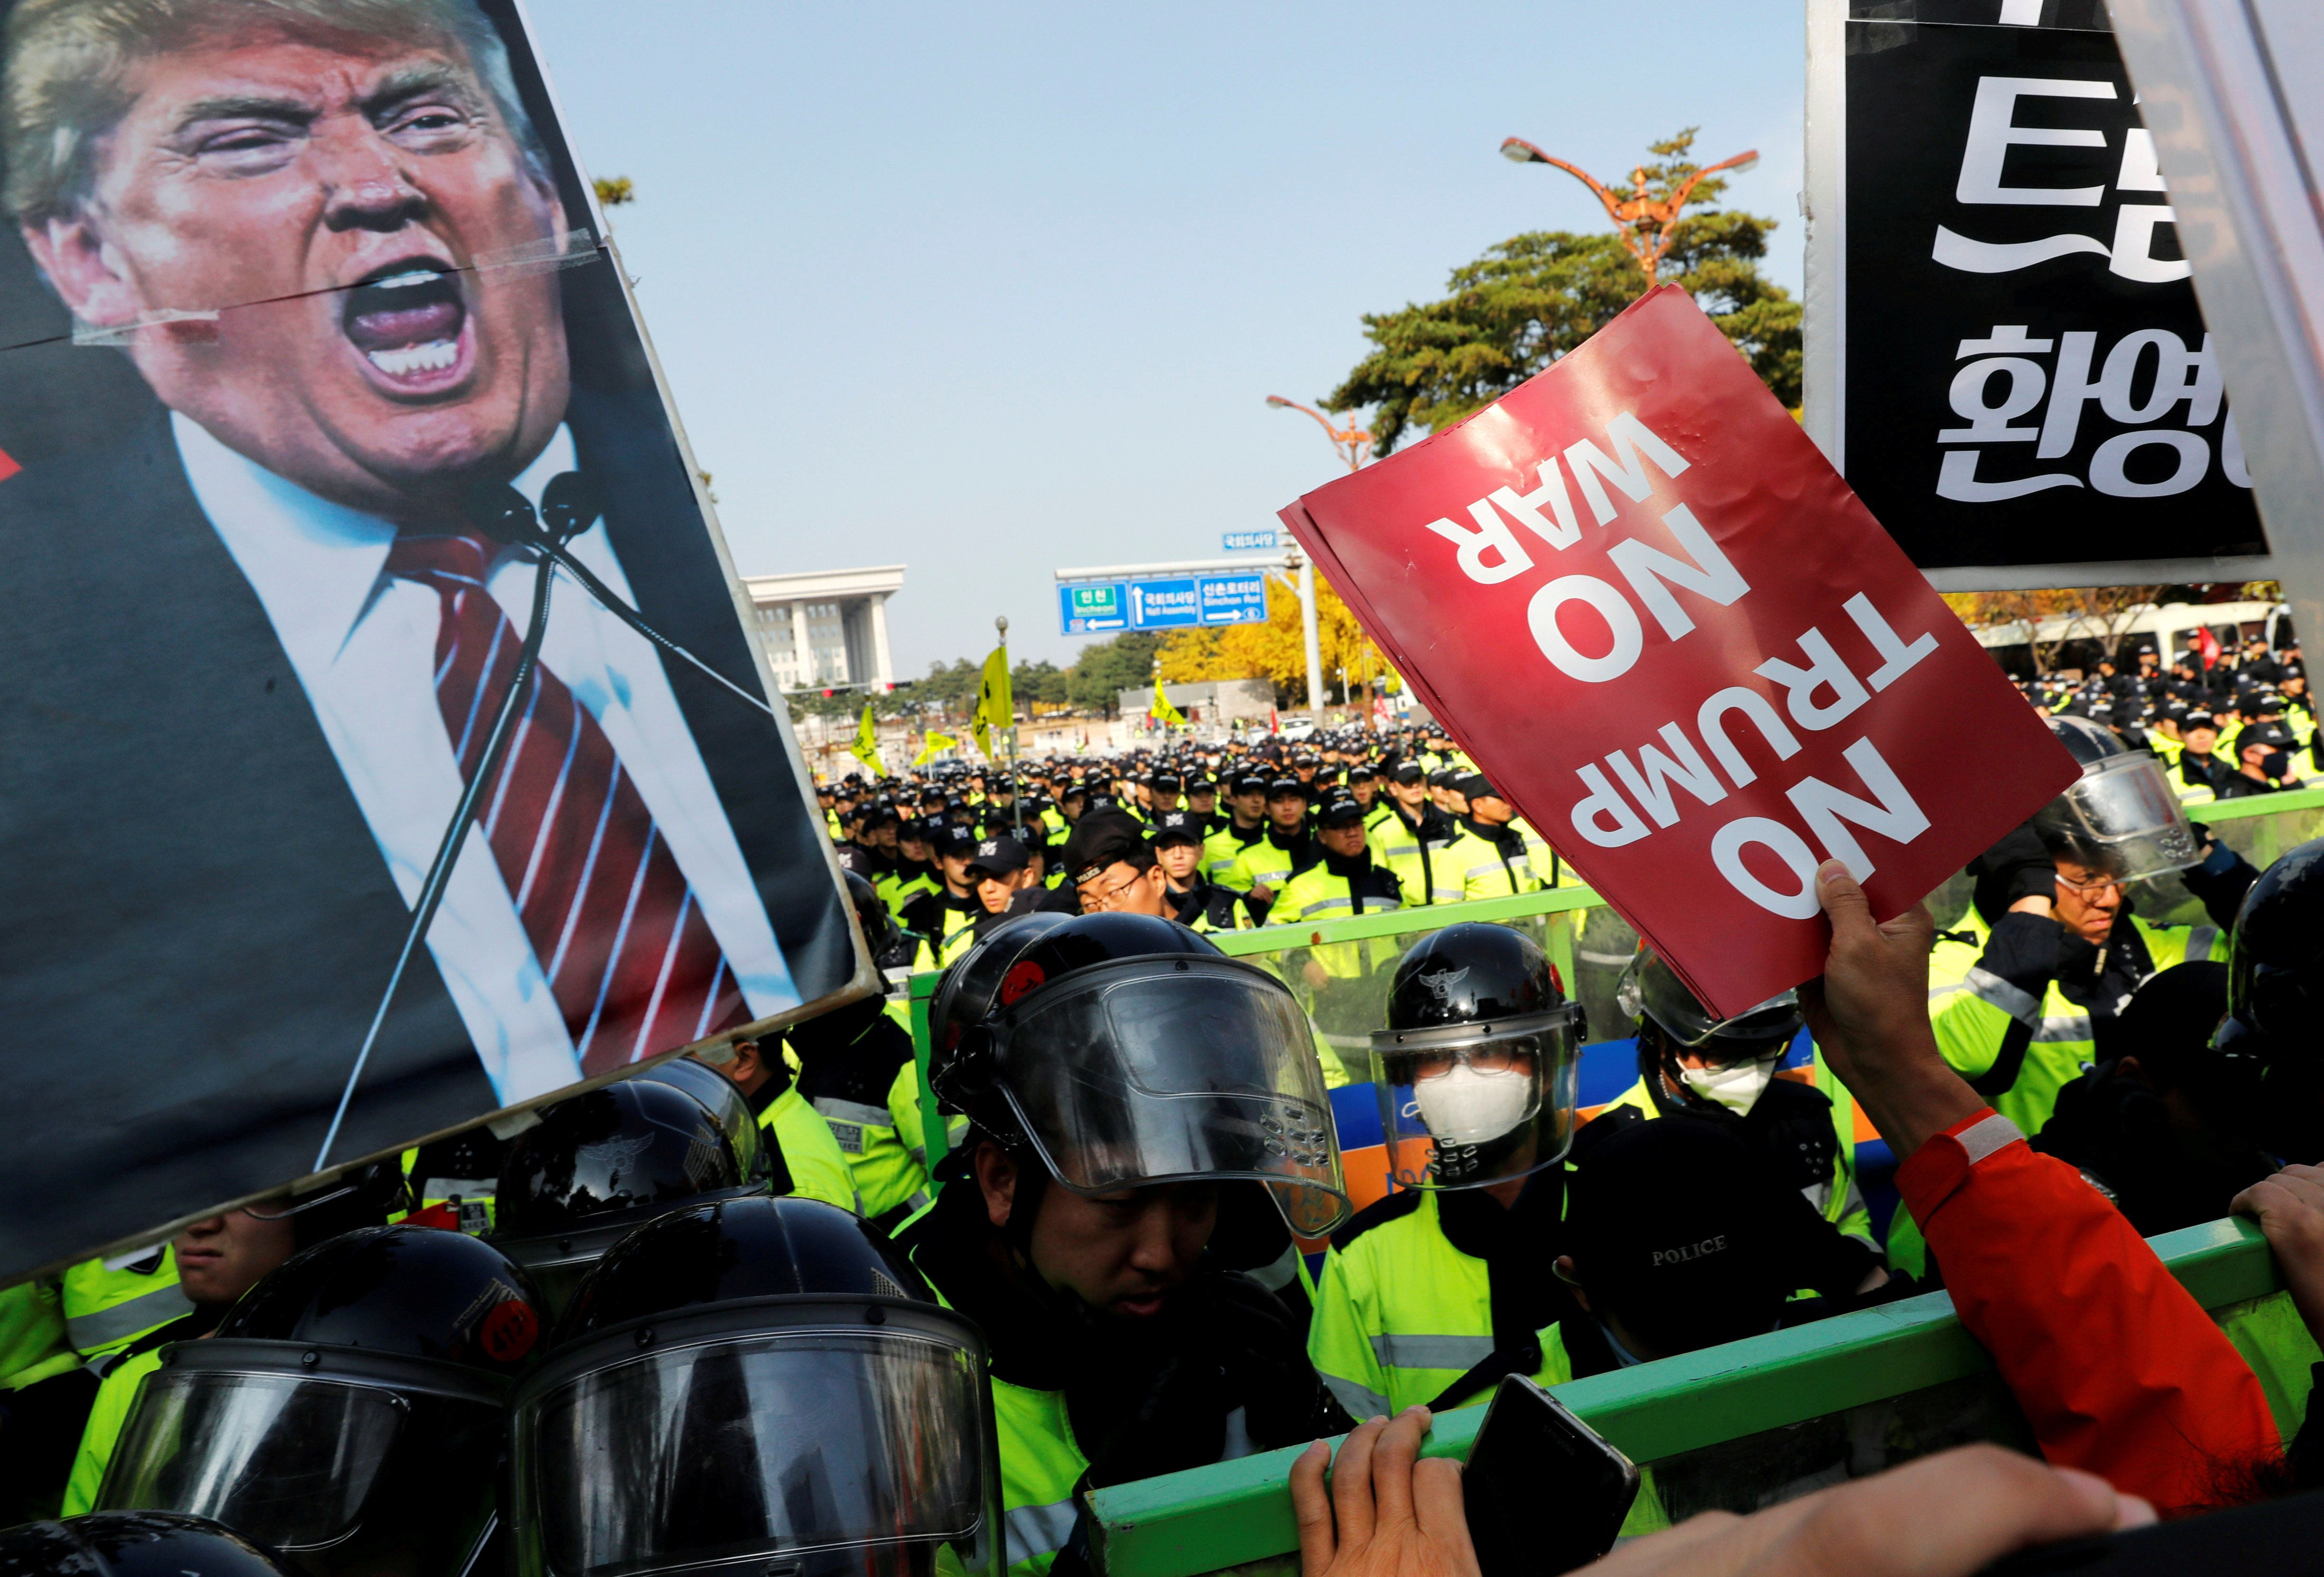 Anti-Trump protesters hold up signs in front of police officers near the South Korean National Assembly where U.S. President Donald Trump made a speech, in Seoul, South Korea, November 8, 2017. REUTERS/Kim Kyung-Hoon     TPX IMAGES OF THE DAY